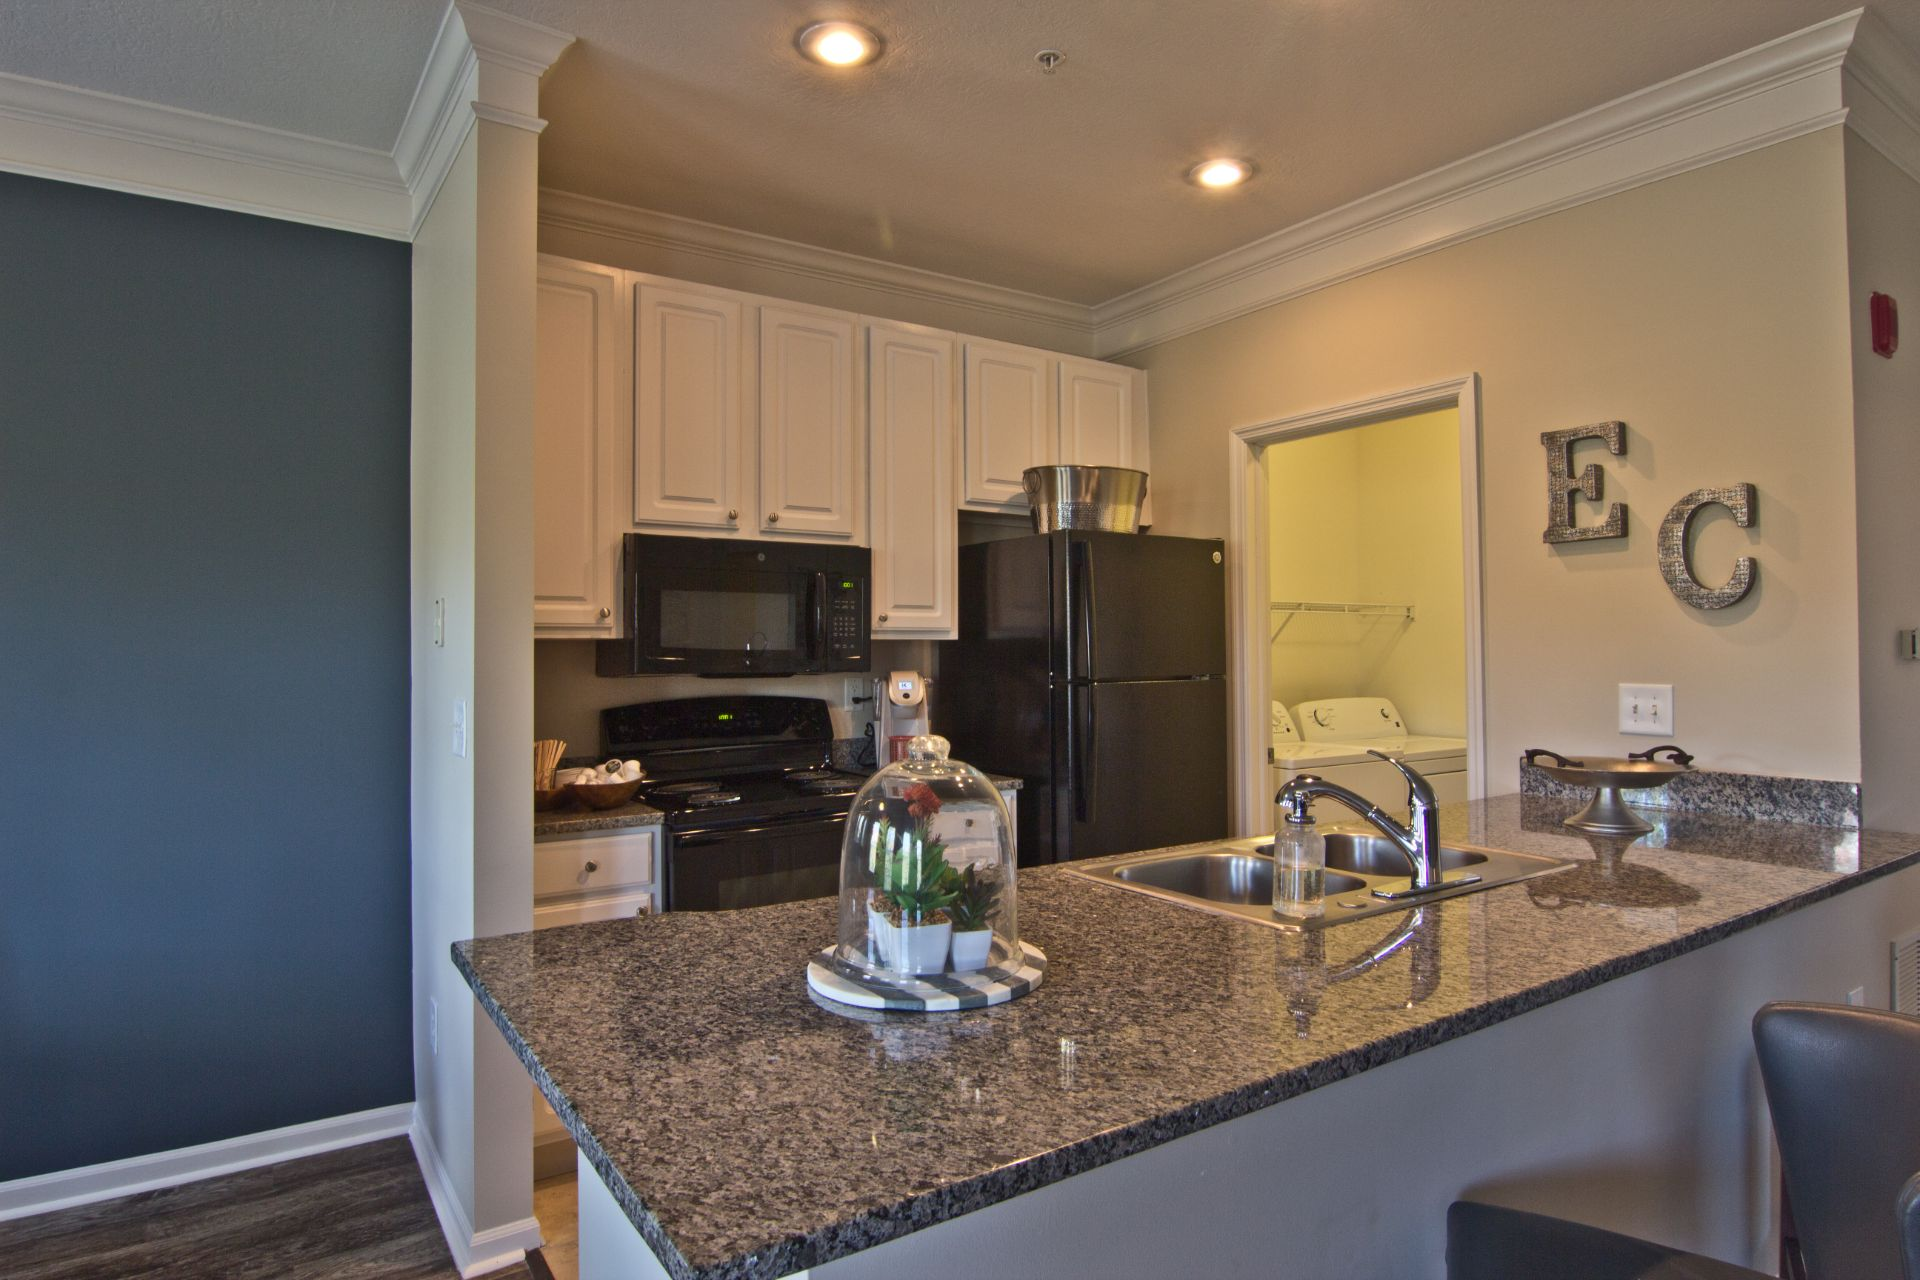 Luxury 1, 2, 3 and 4 Bedroom  Apartments and Townhomes with Modern Kitchens and Washer-Dryer near Easton Town Center in Columbus OH  4011 Easton Way Columbus OH 43219 Easton Commons